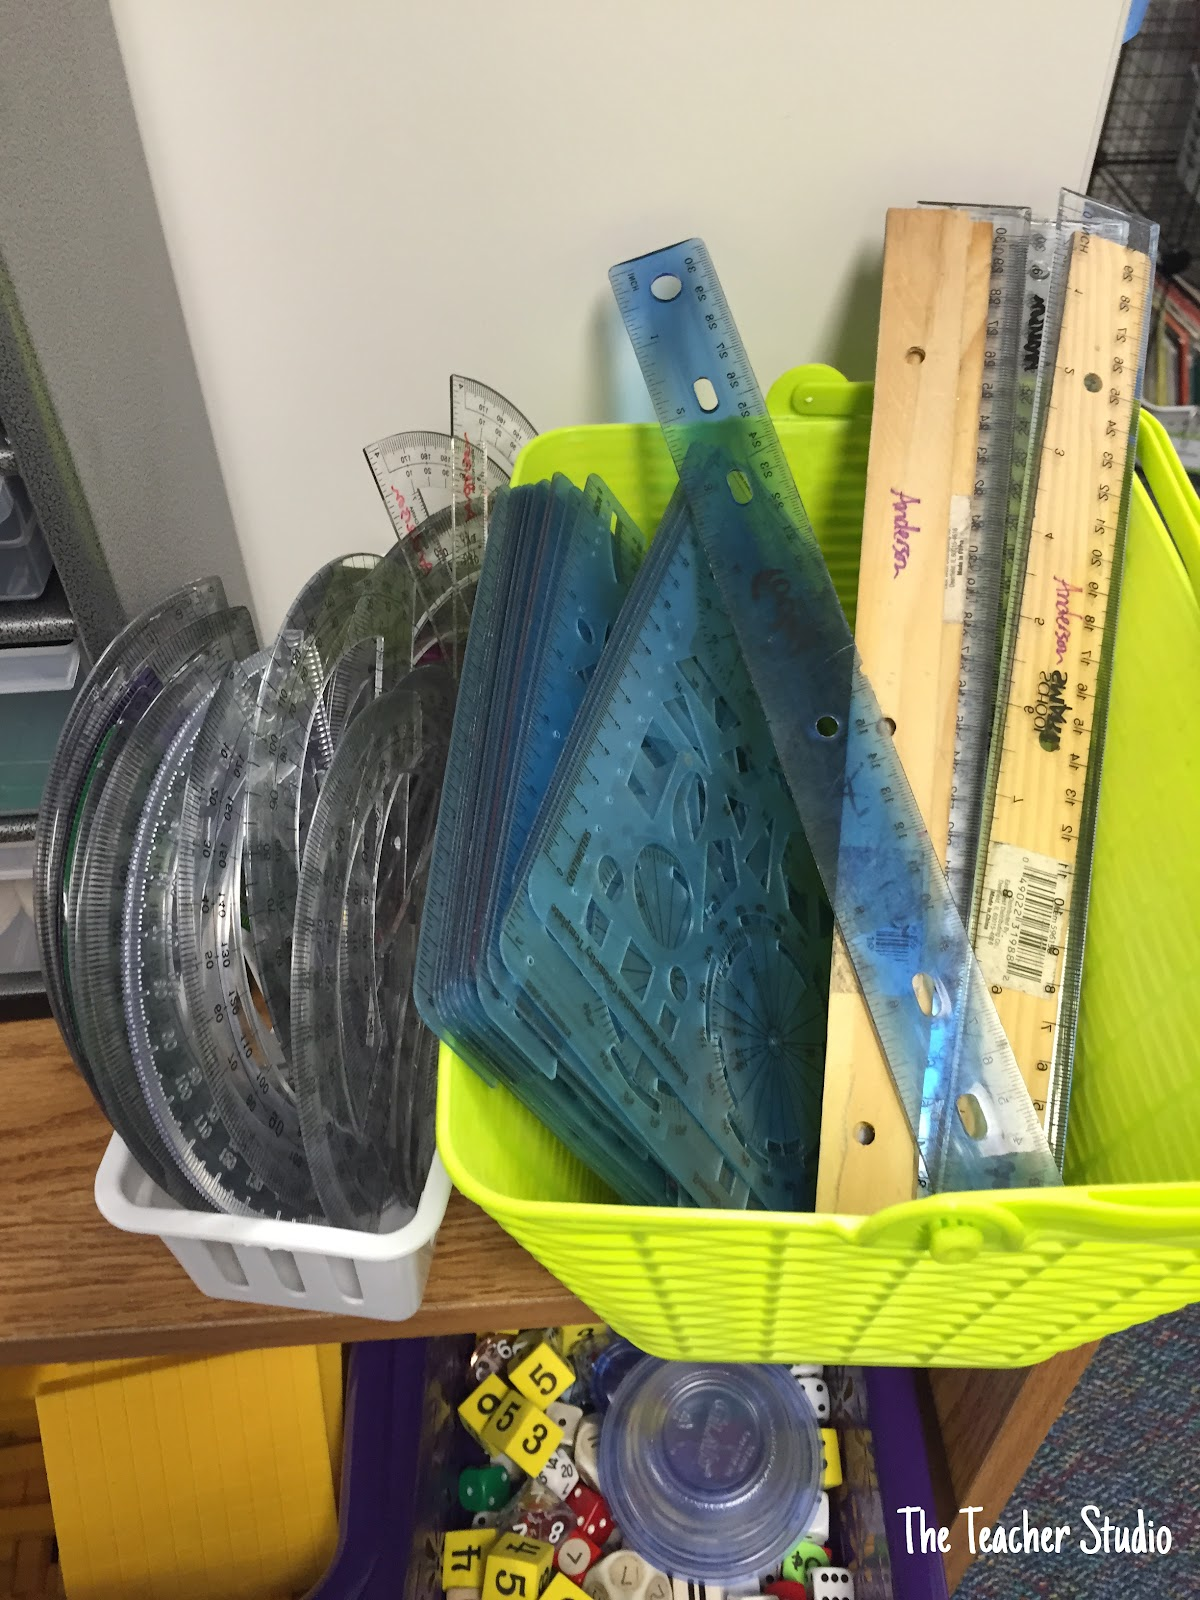 One teacher's 5 secrets to a fantastic math workshop: I have a bookshelf full of supplies that my students can access independently--and that my students are responsible for organizing.